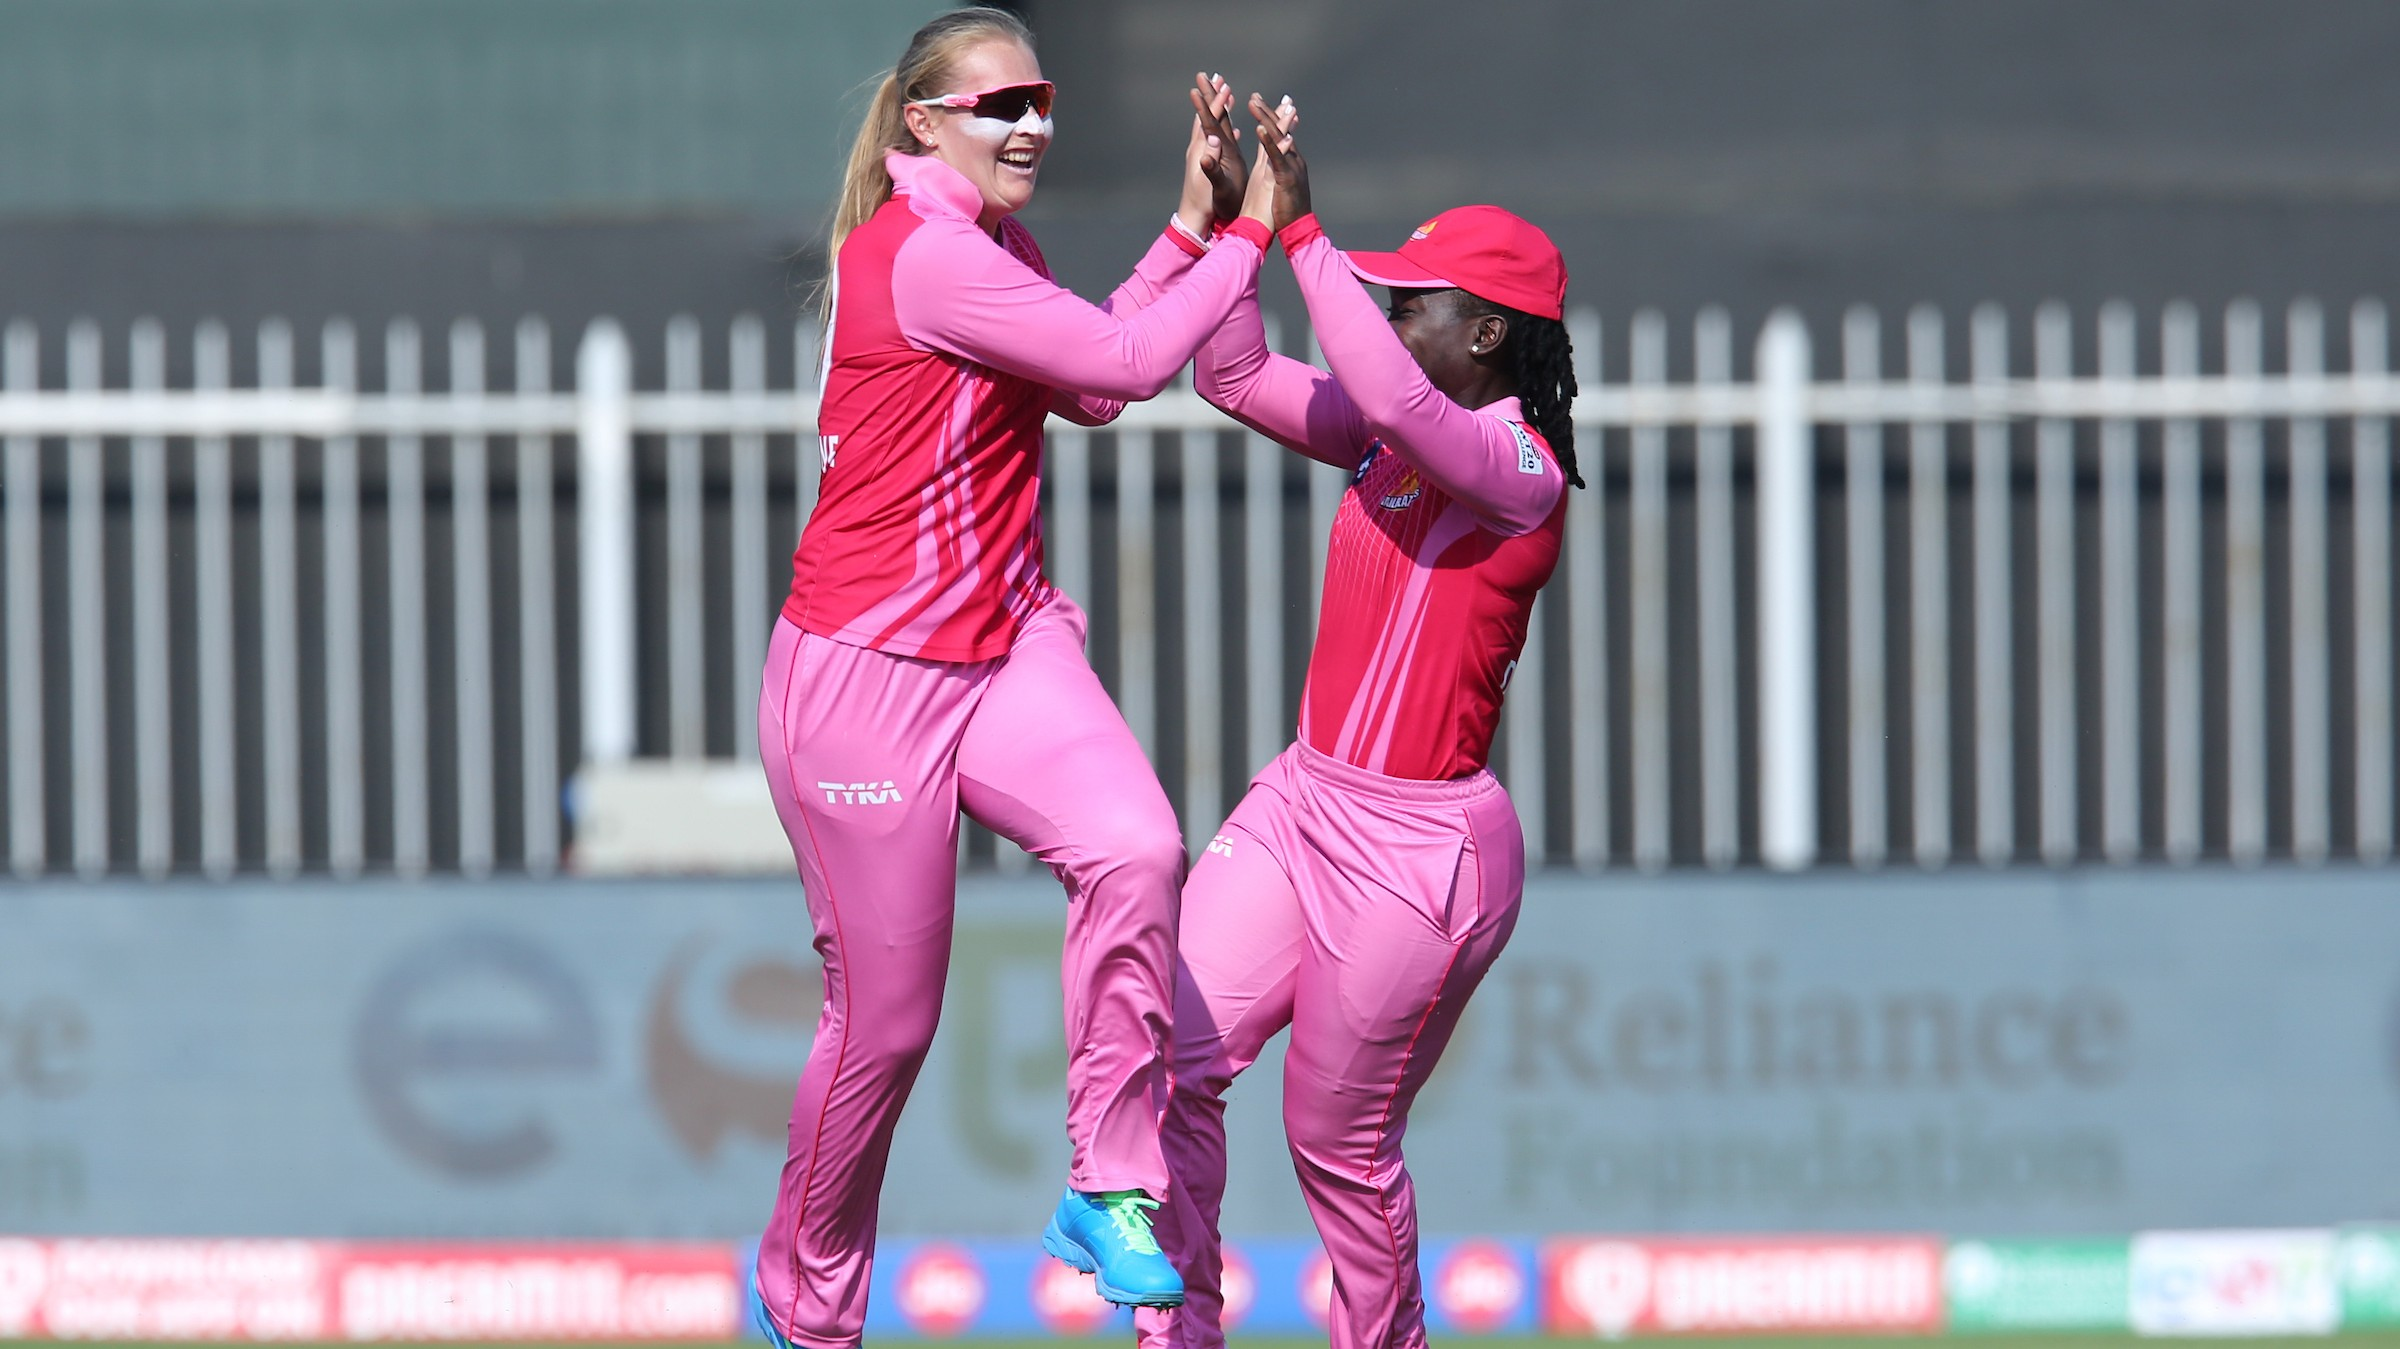 WT20 Challenge 2020: Sophie Ecclestone shines with the ball in Trailblazers' 9-wicket win over Velocity